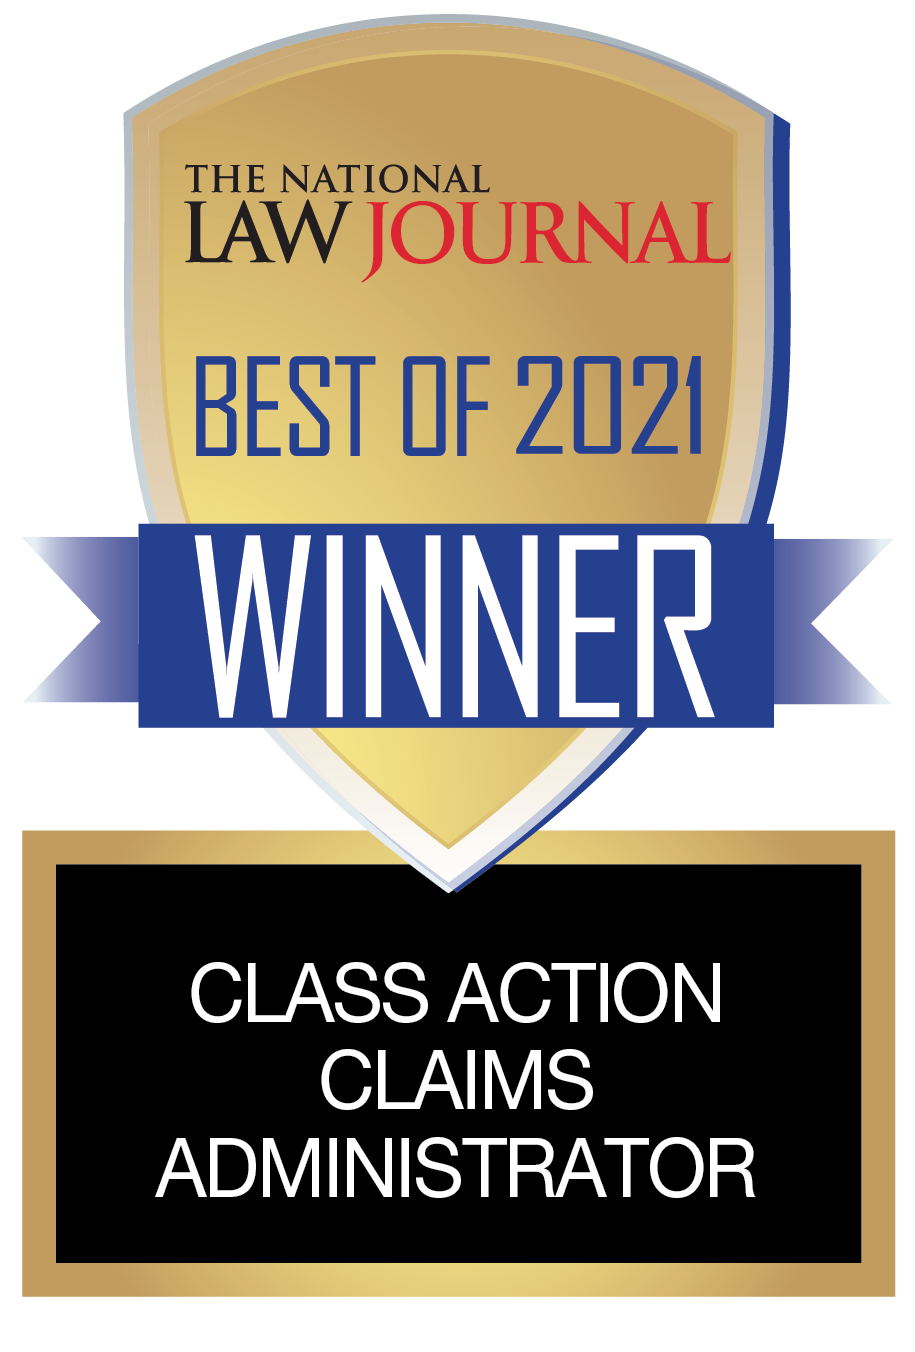 Winner of the National Law Journal 'Best of 2021' for Class Action Claims Administration